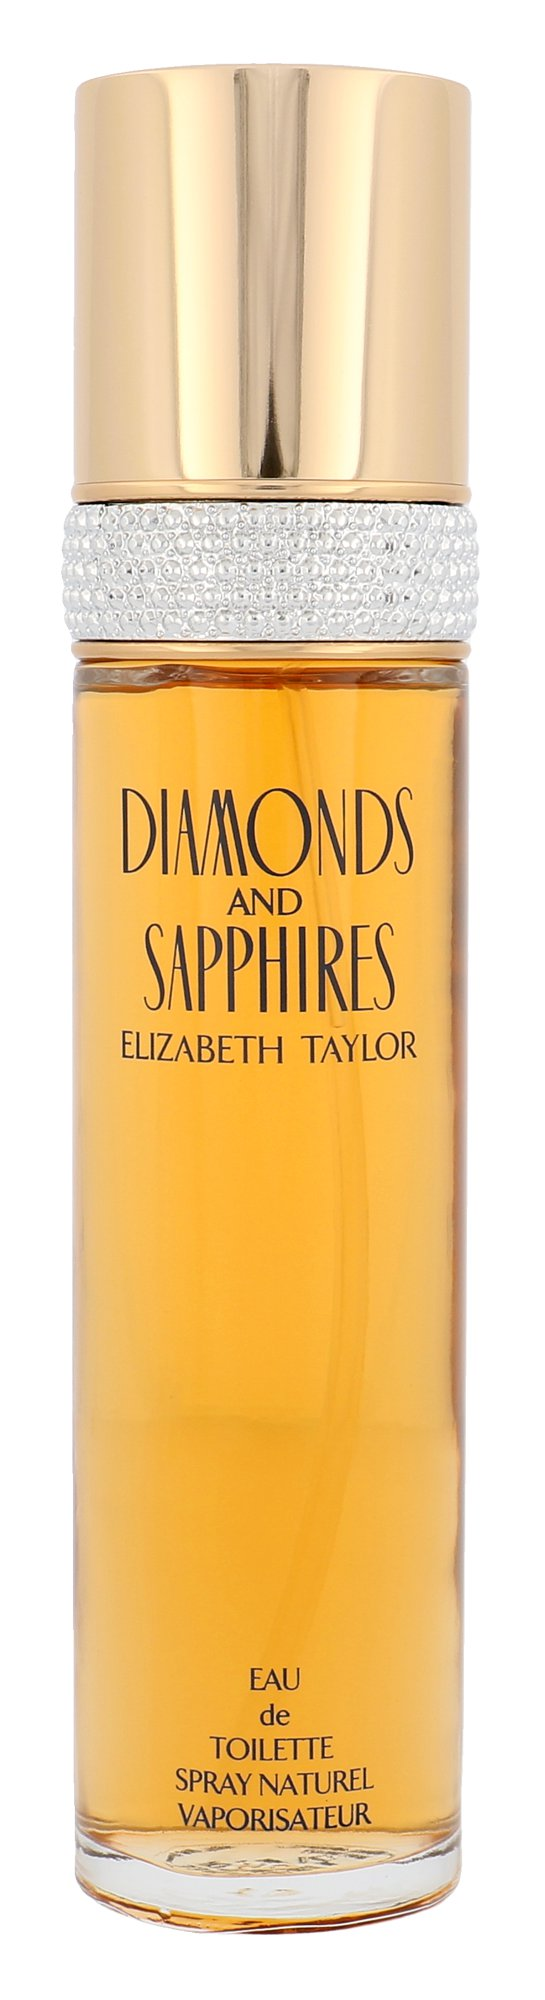 Elizabeth Taylor Diamonds and Saphires, Toaletná voda 100ml